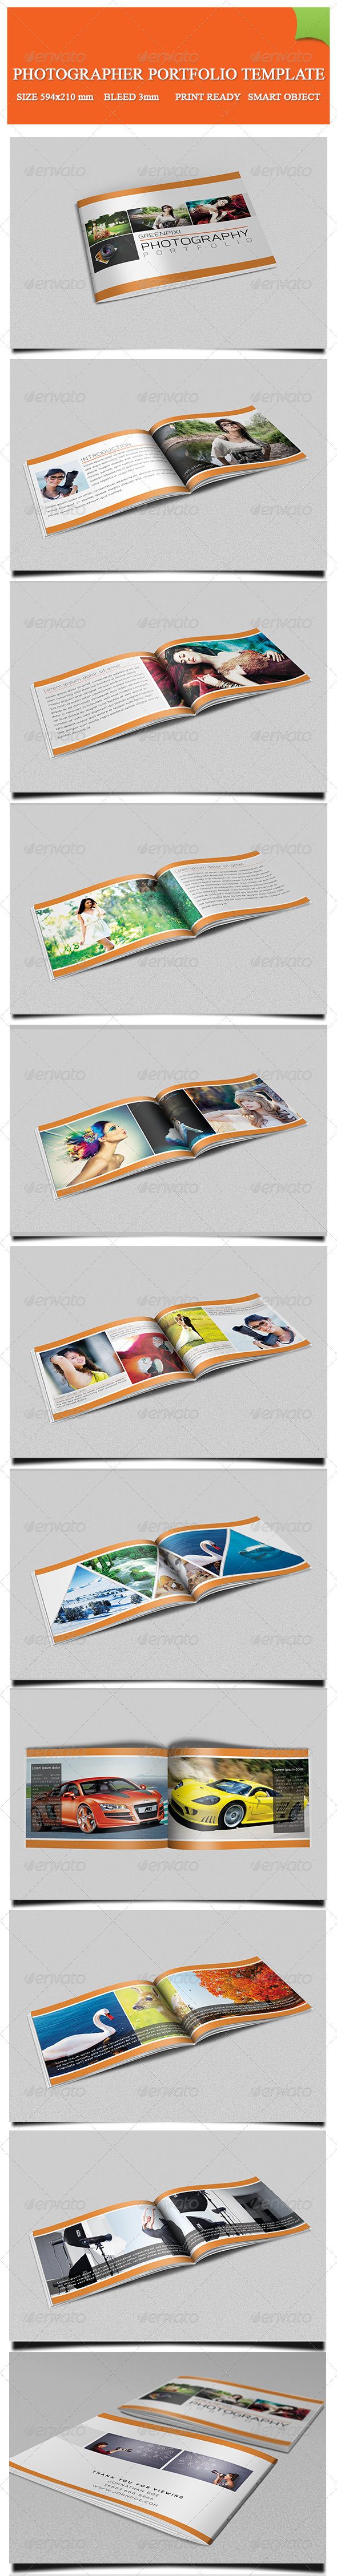 GraphicRiver Photography Portfolio Template 8280747